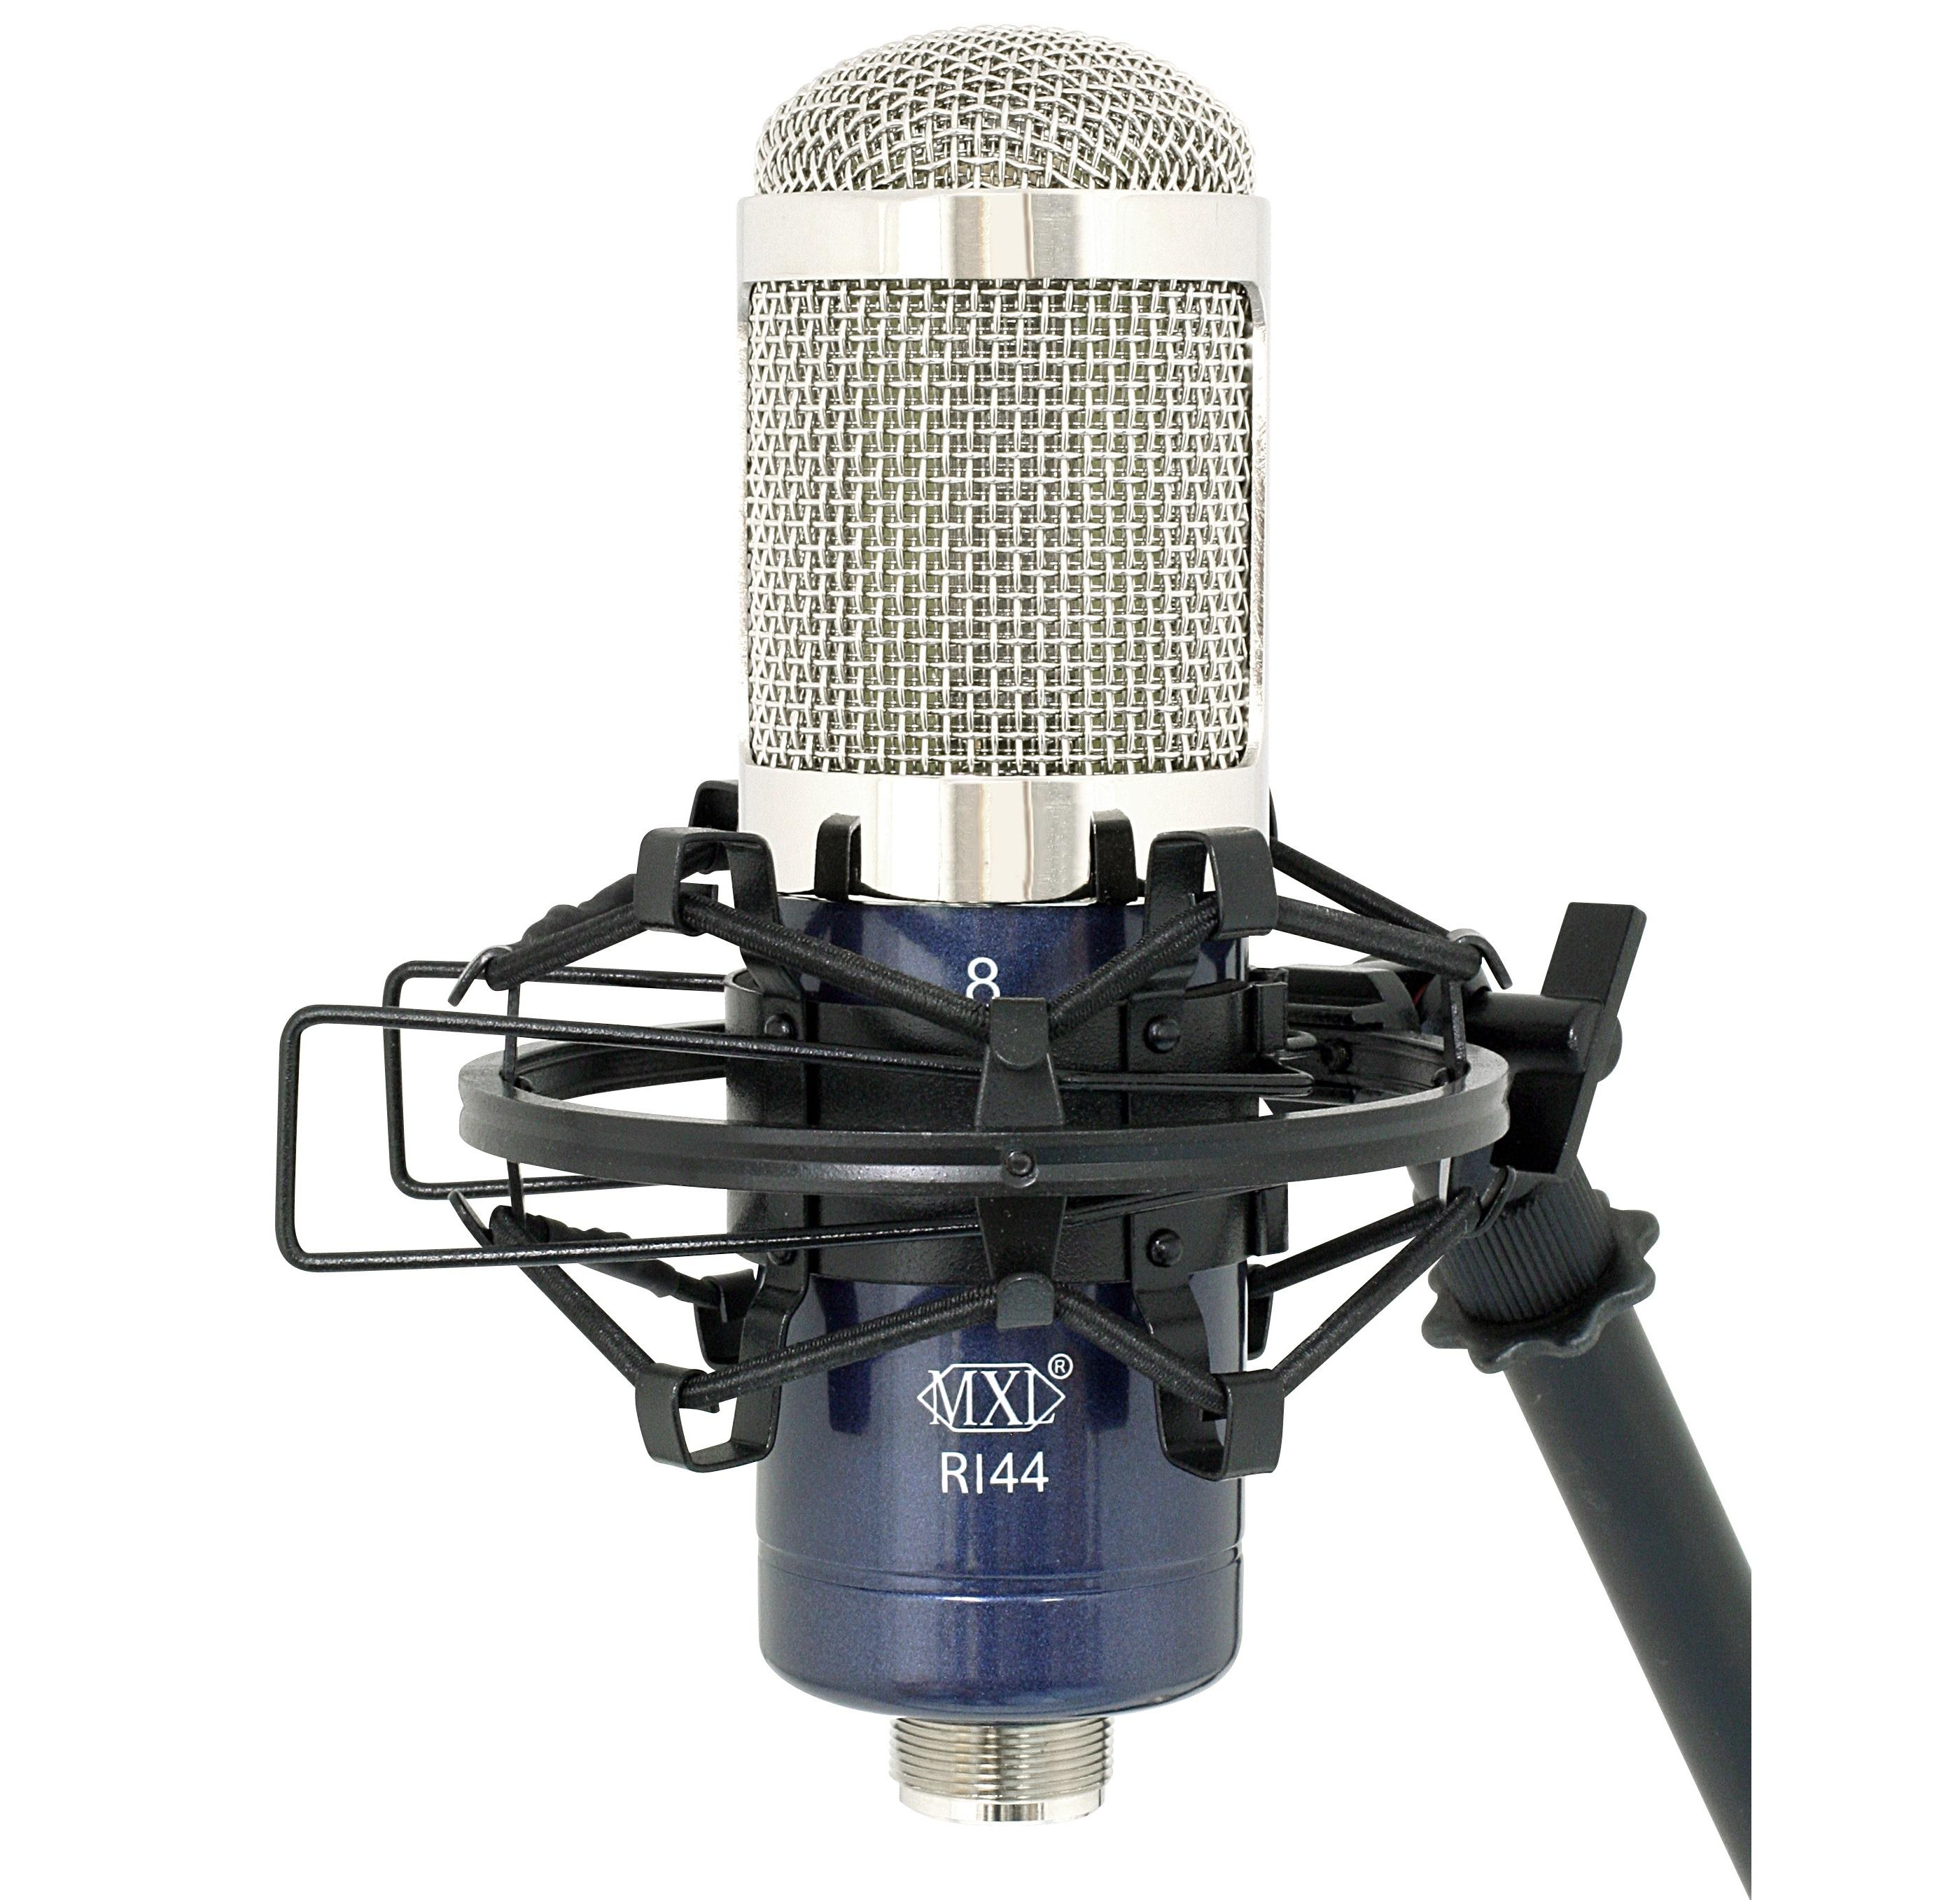 Mxl R144 Ribbon Microphone With Shockmount Musical Condenser Diagram View Larger